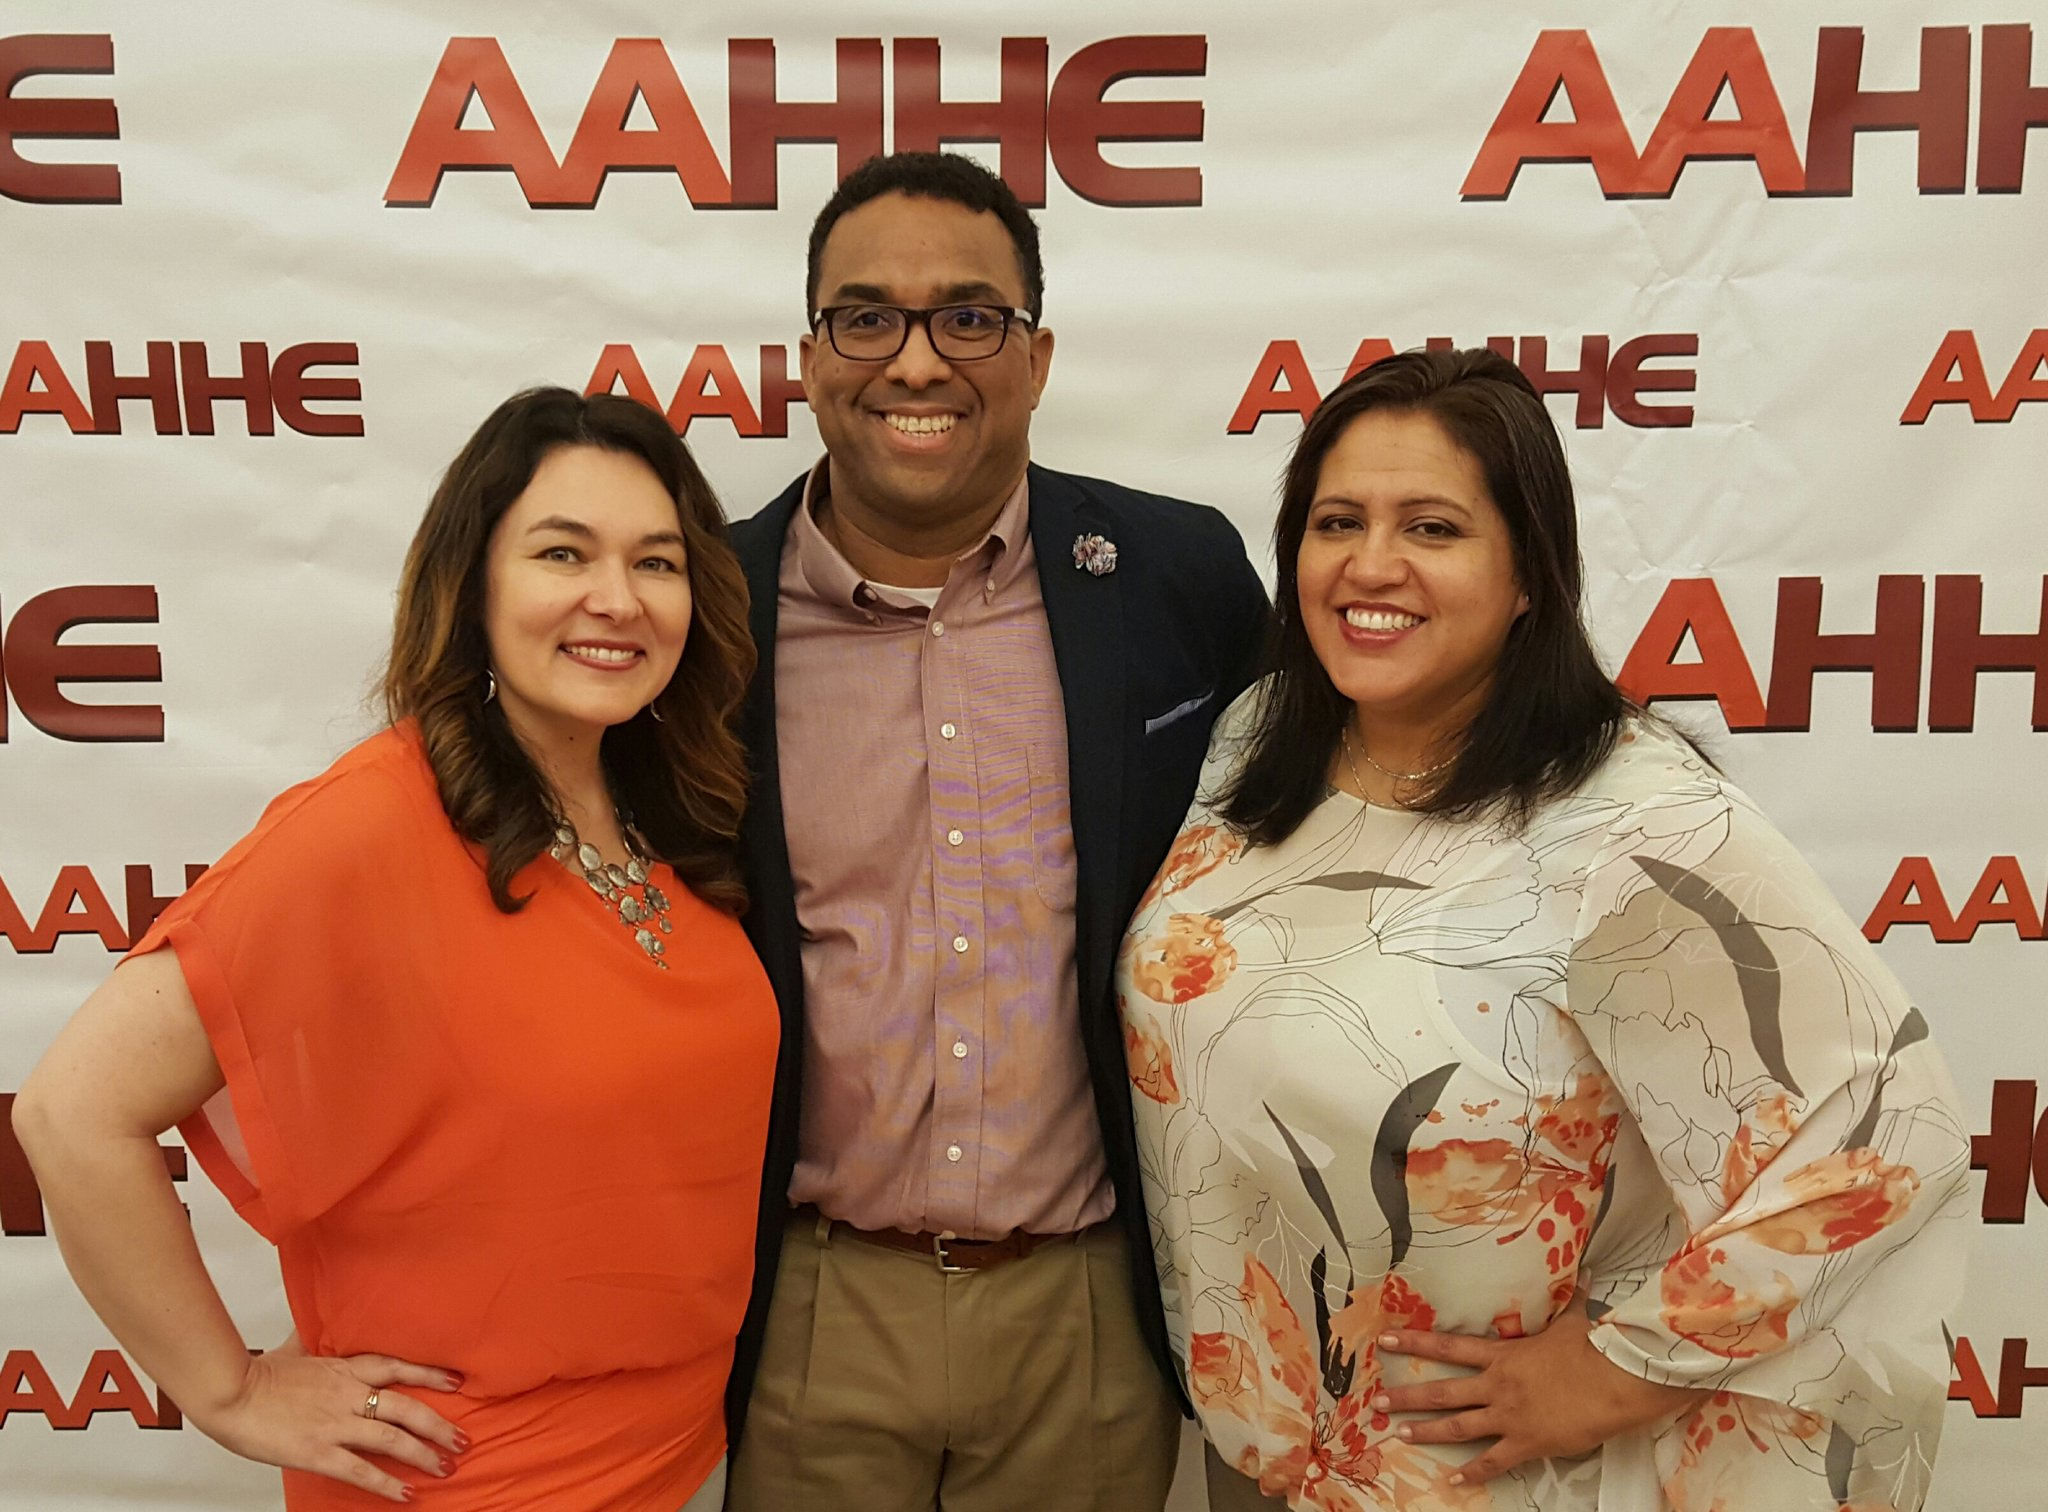 Thumbnail for @AAHHEconf American Assoc #Hispanic in Higher #Education #AAHHE17 conference